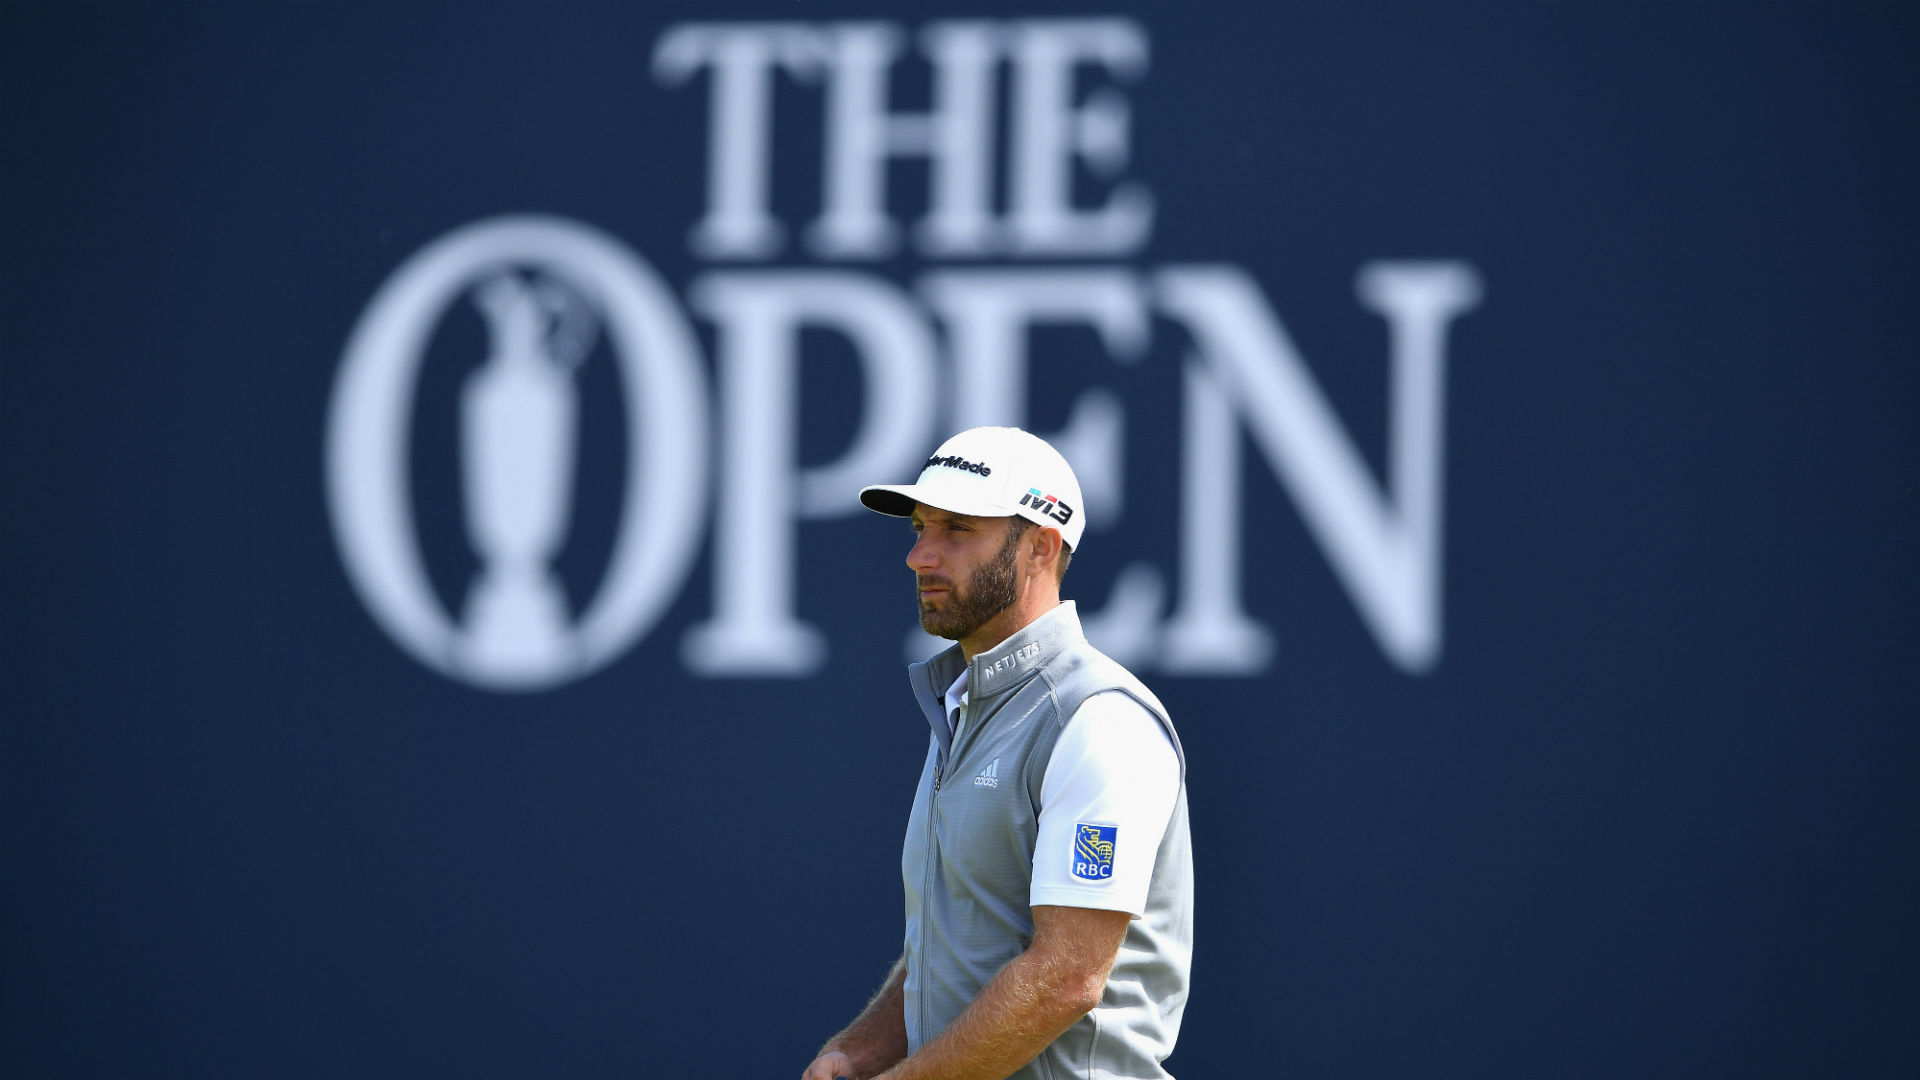 Dustin-Johnson-FTR-GettyImages